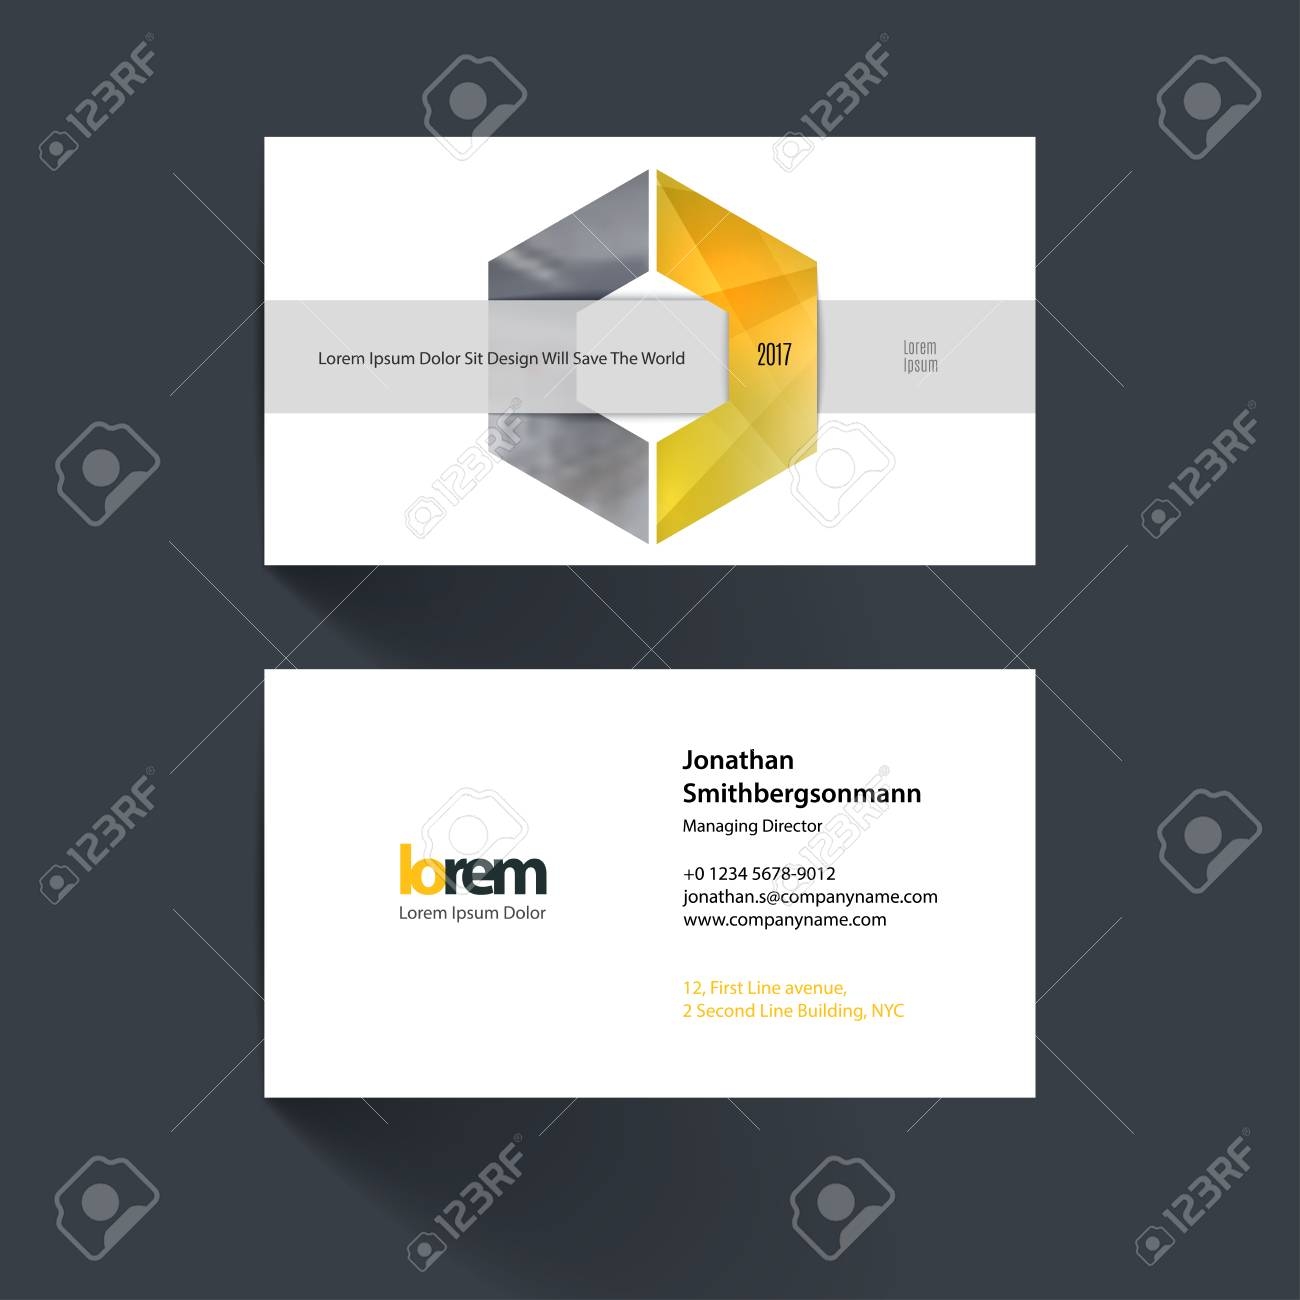 Vector Business Card Template With Geometric Shape And Overlap ...